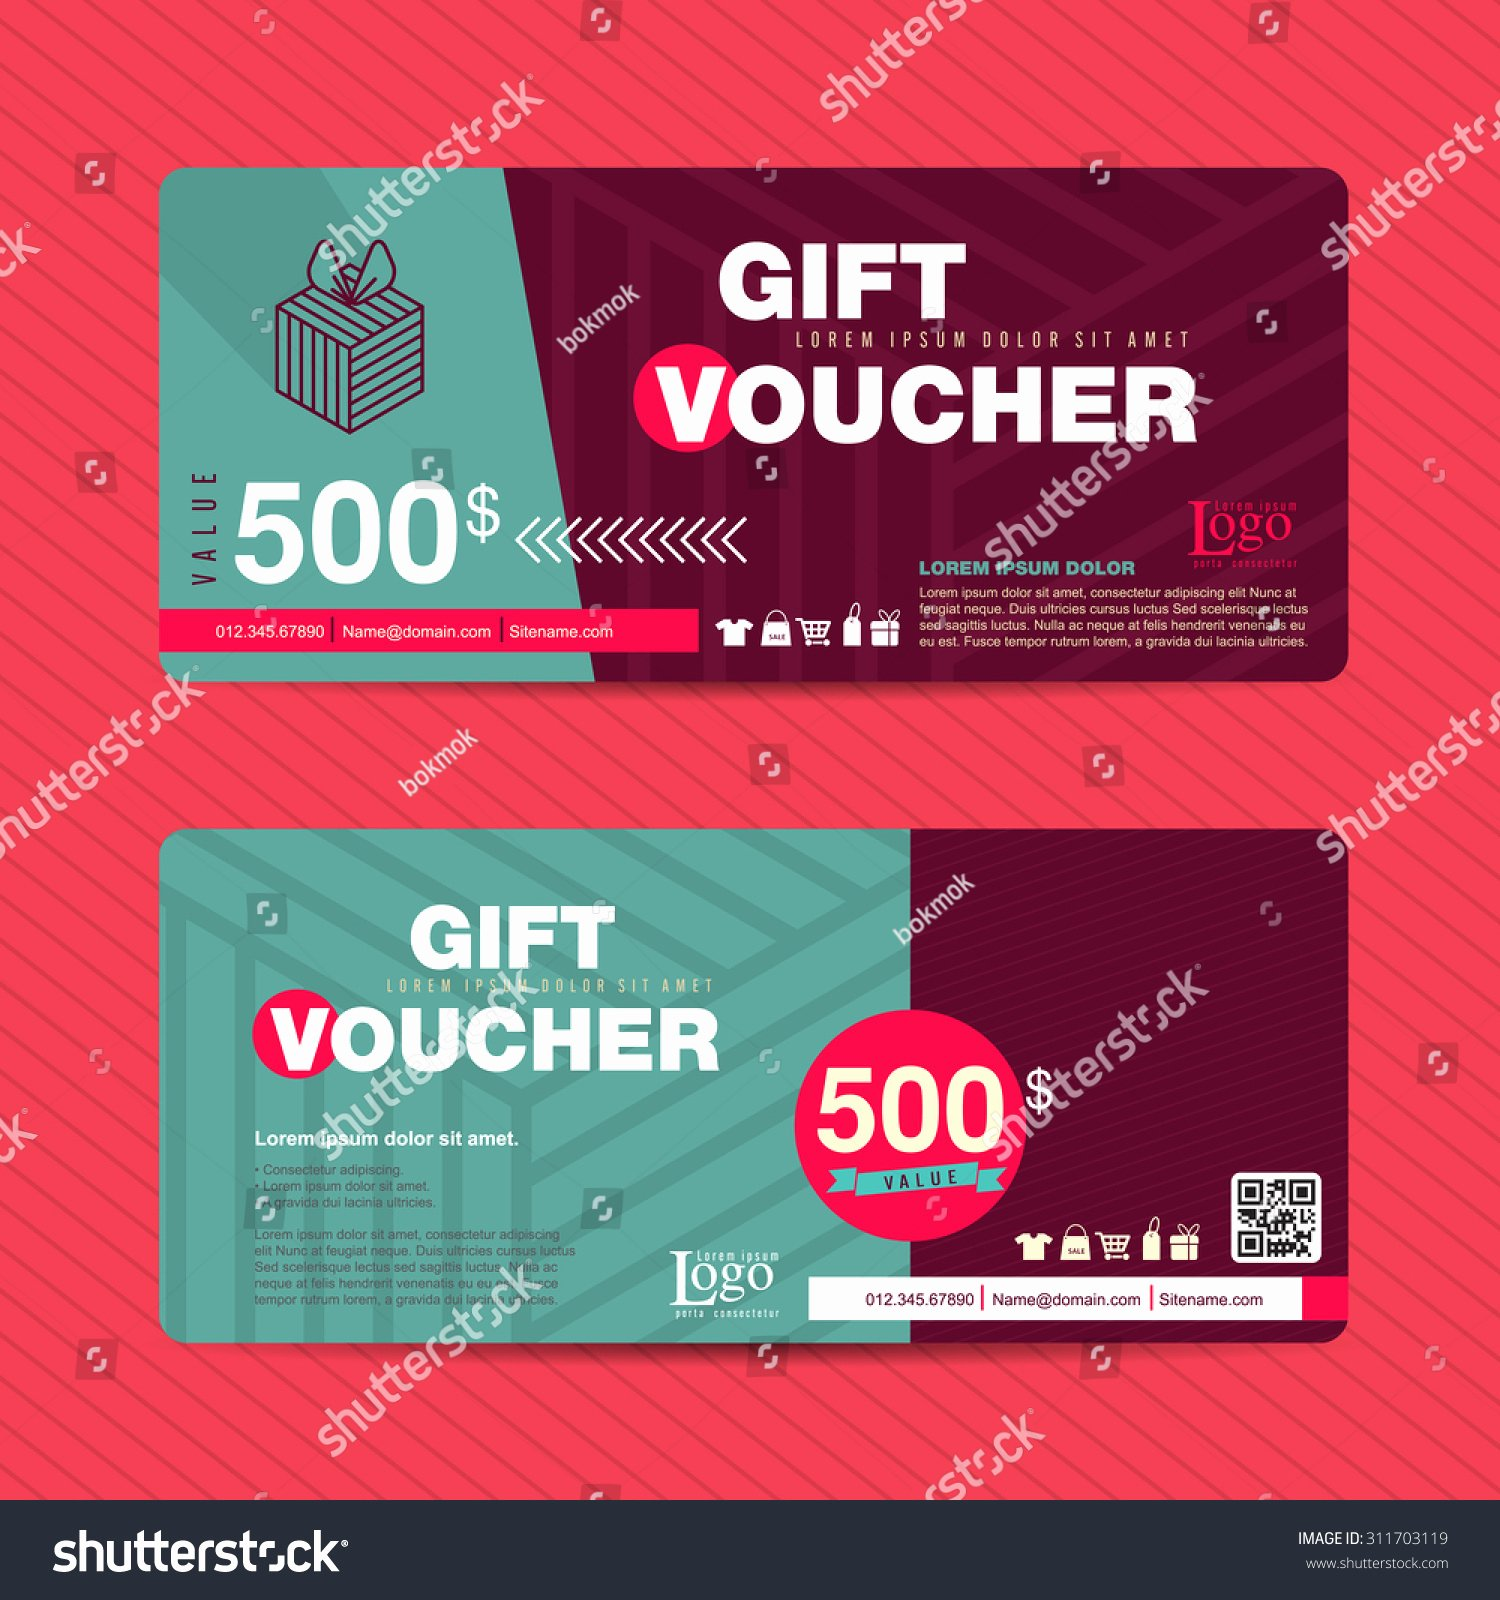 Cute Gift Certificate Template New Vector Illustration Gift Voucher Template with Colorful